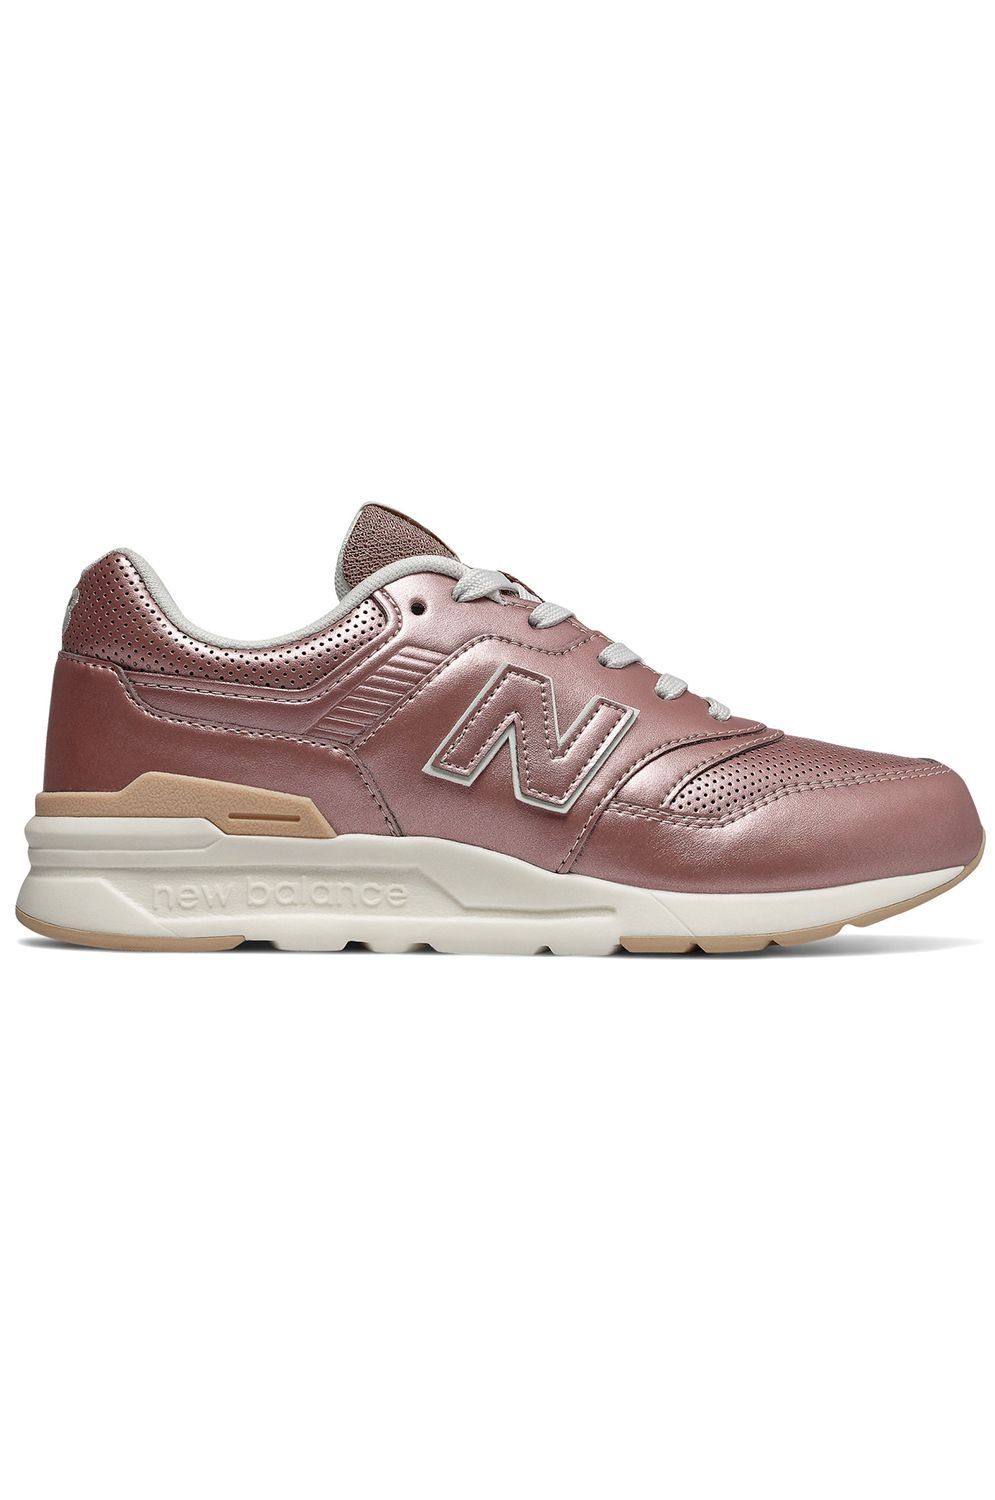 Tenis New Balance GR997 Rose Gold